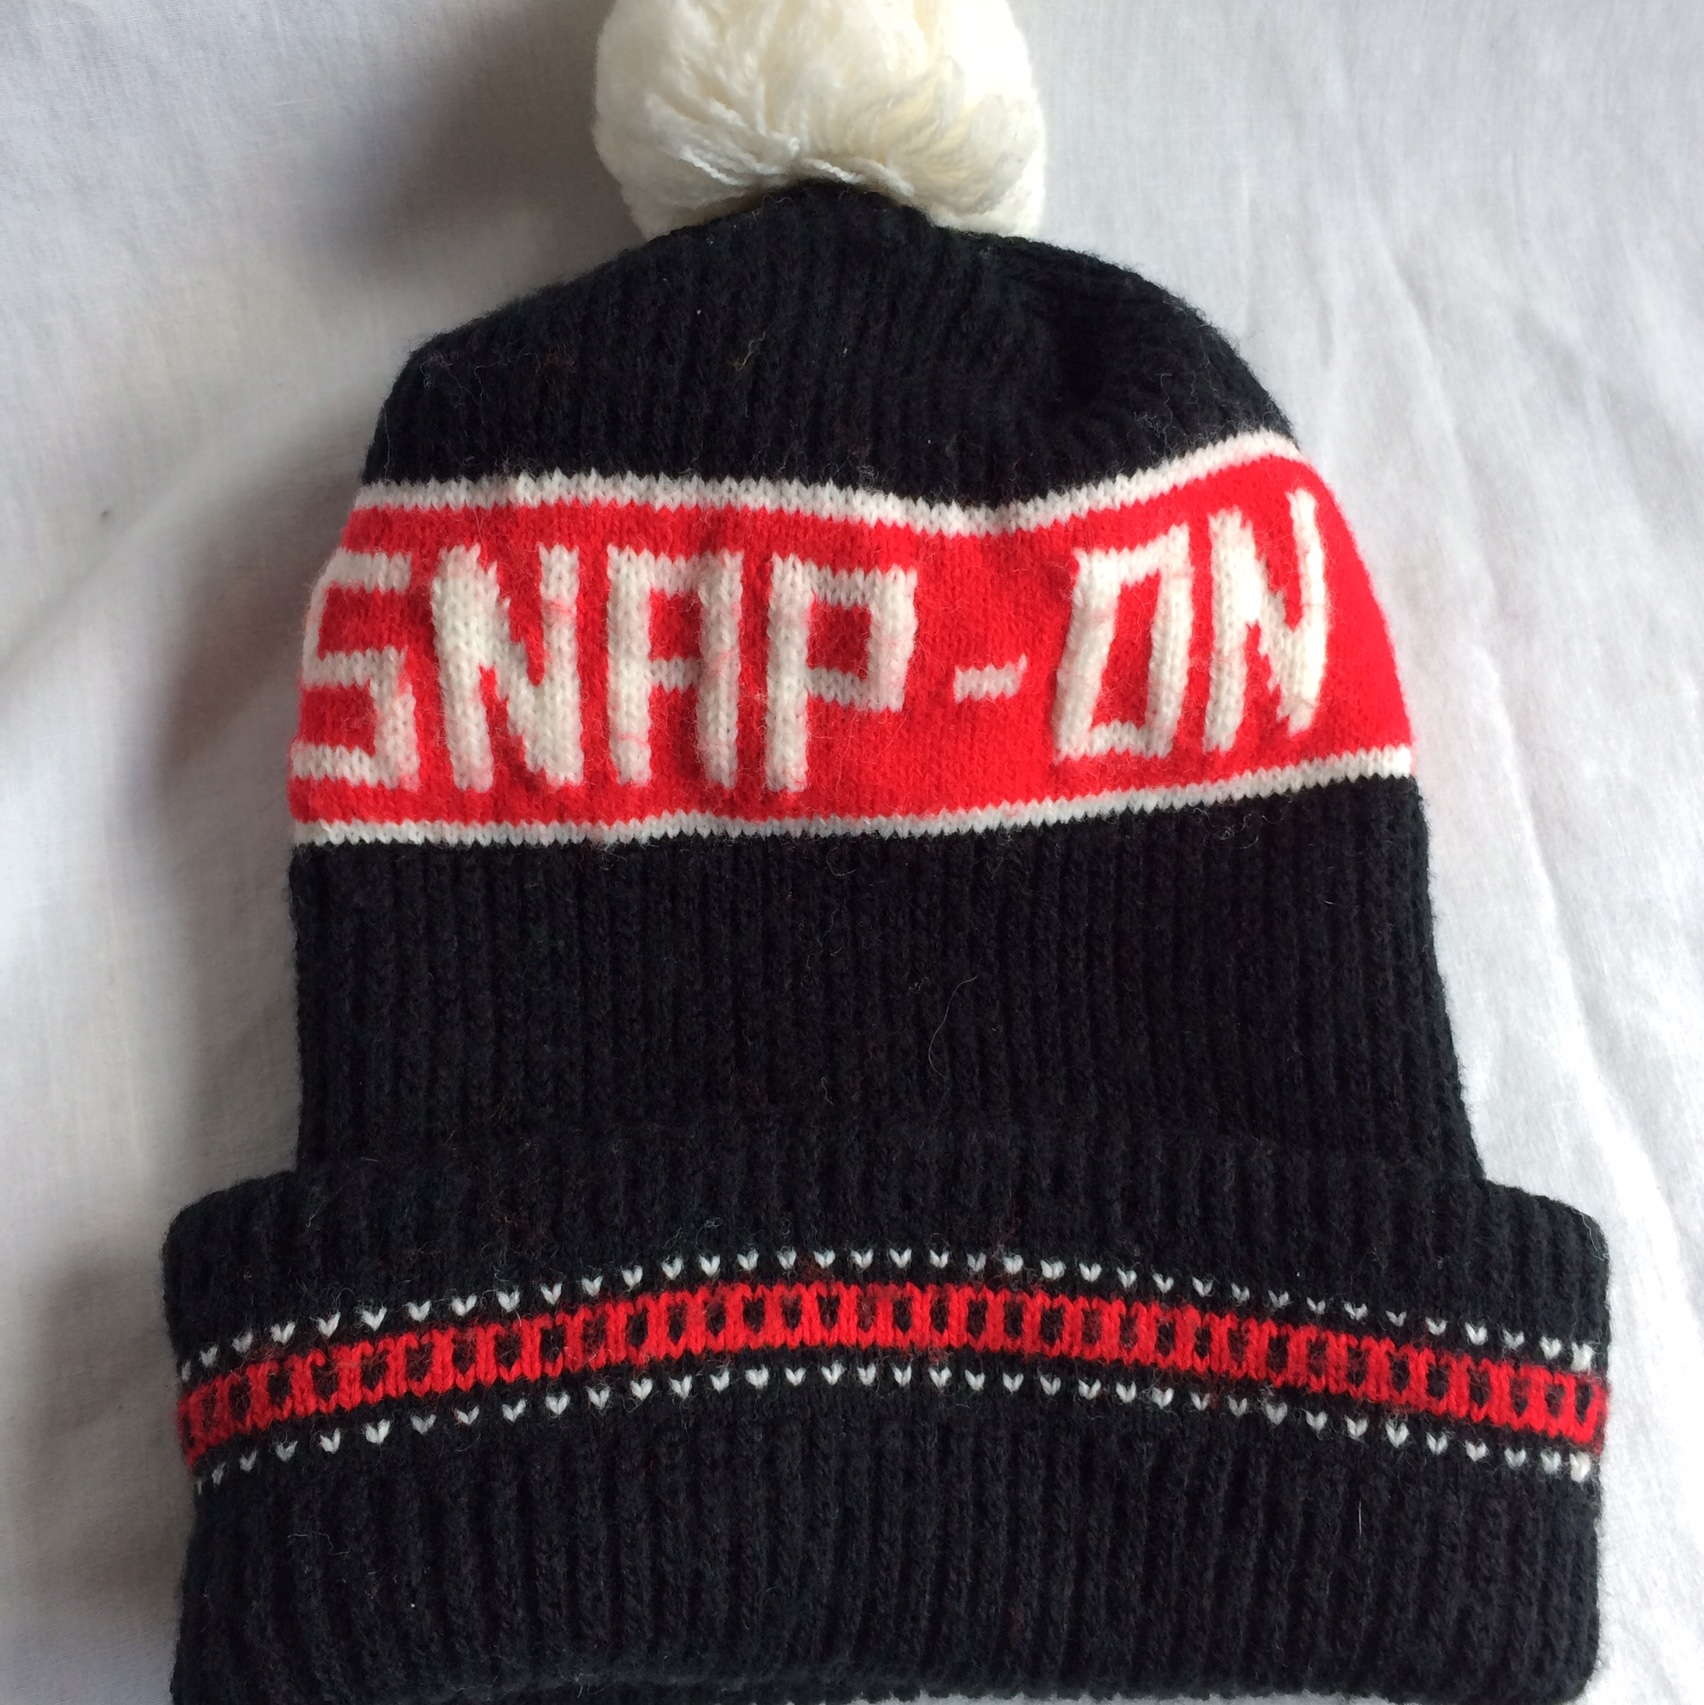 2f19b98b4 Vintage Snap-On Tools Winter Cap Beanie. This beanie... - Depop